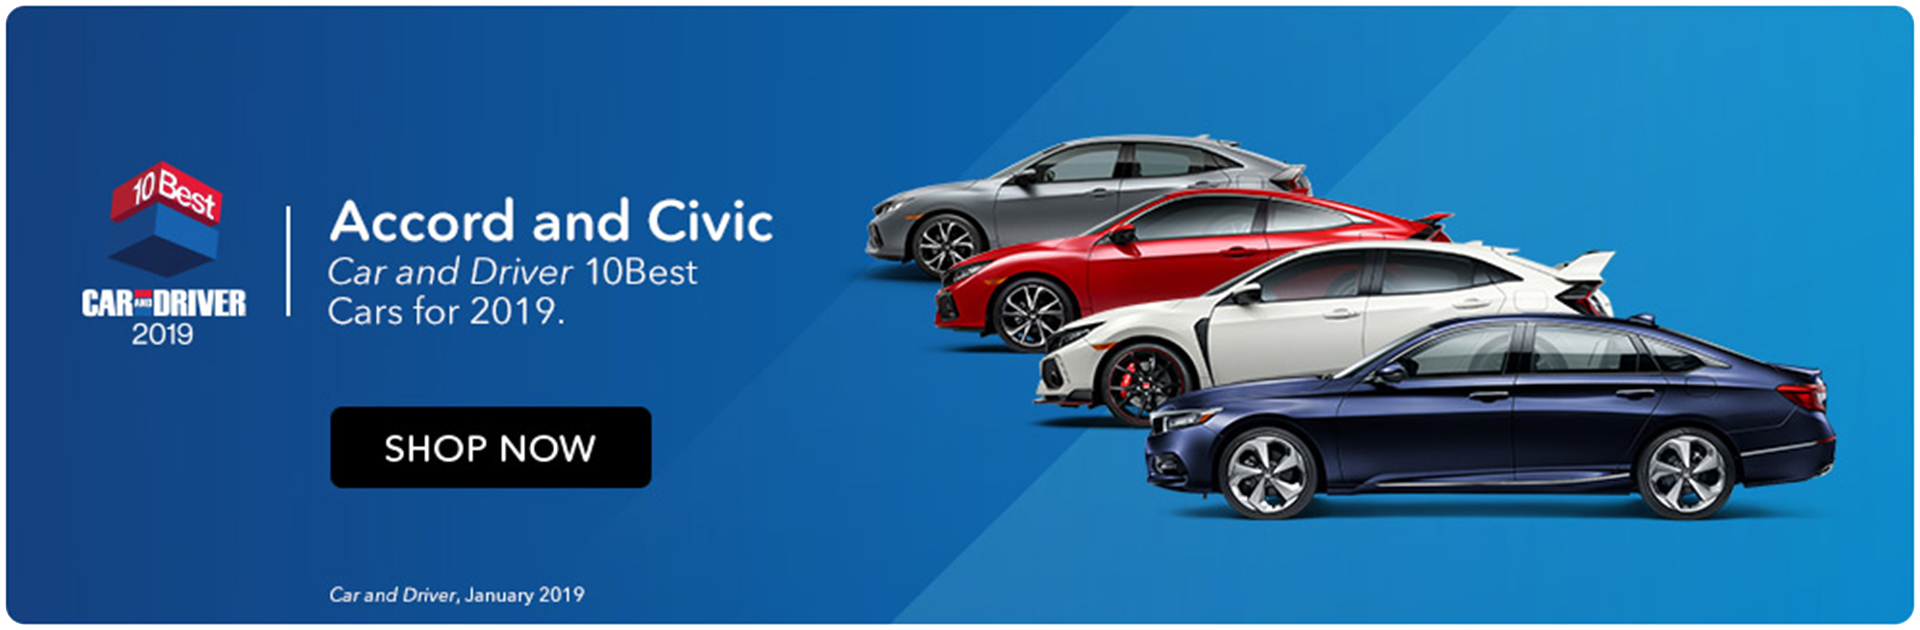 Accord and Civic: Car and Driver 10Best Cars for 2019.